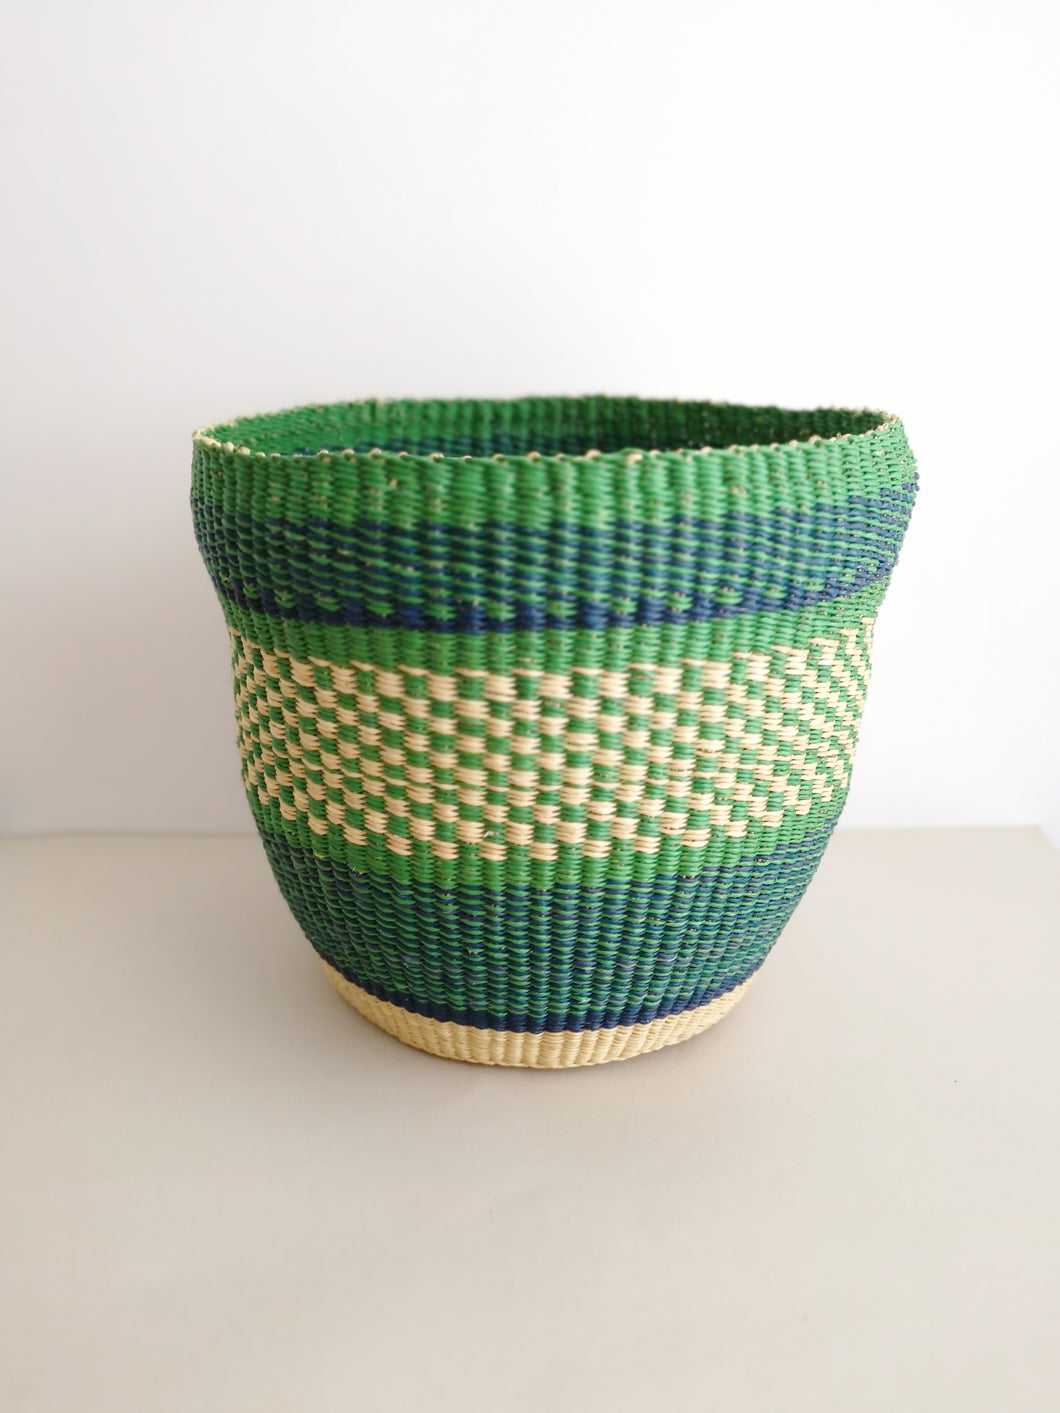 Planter Basket - Green and Blue